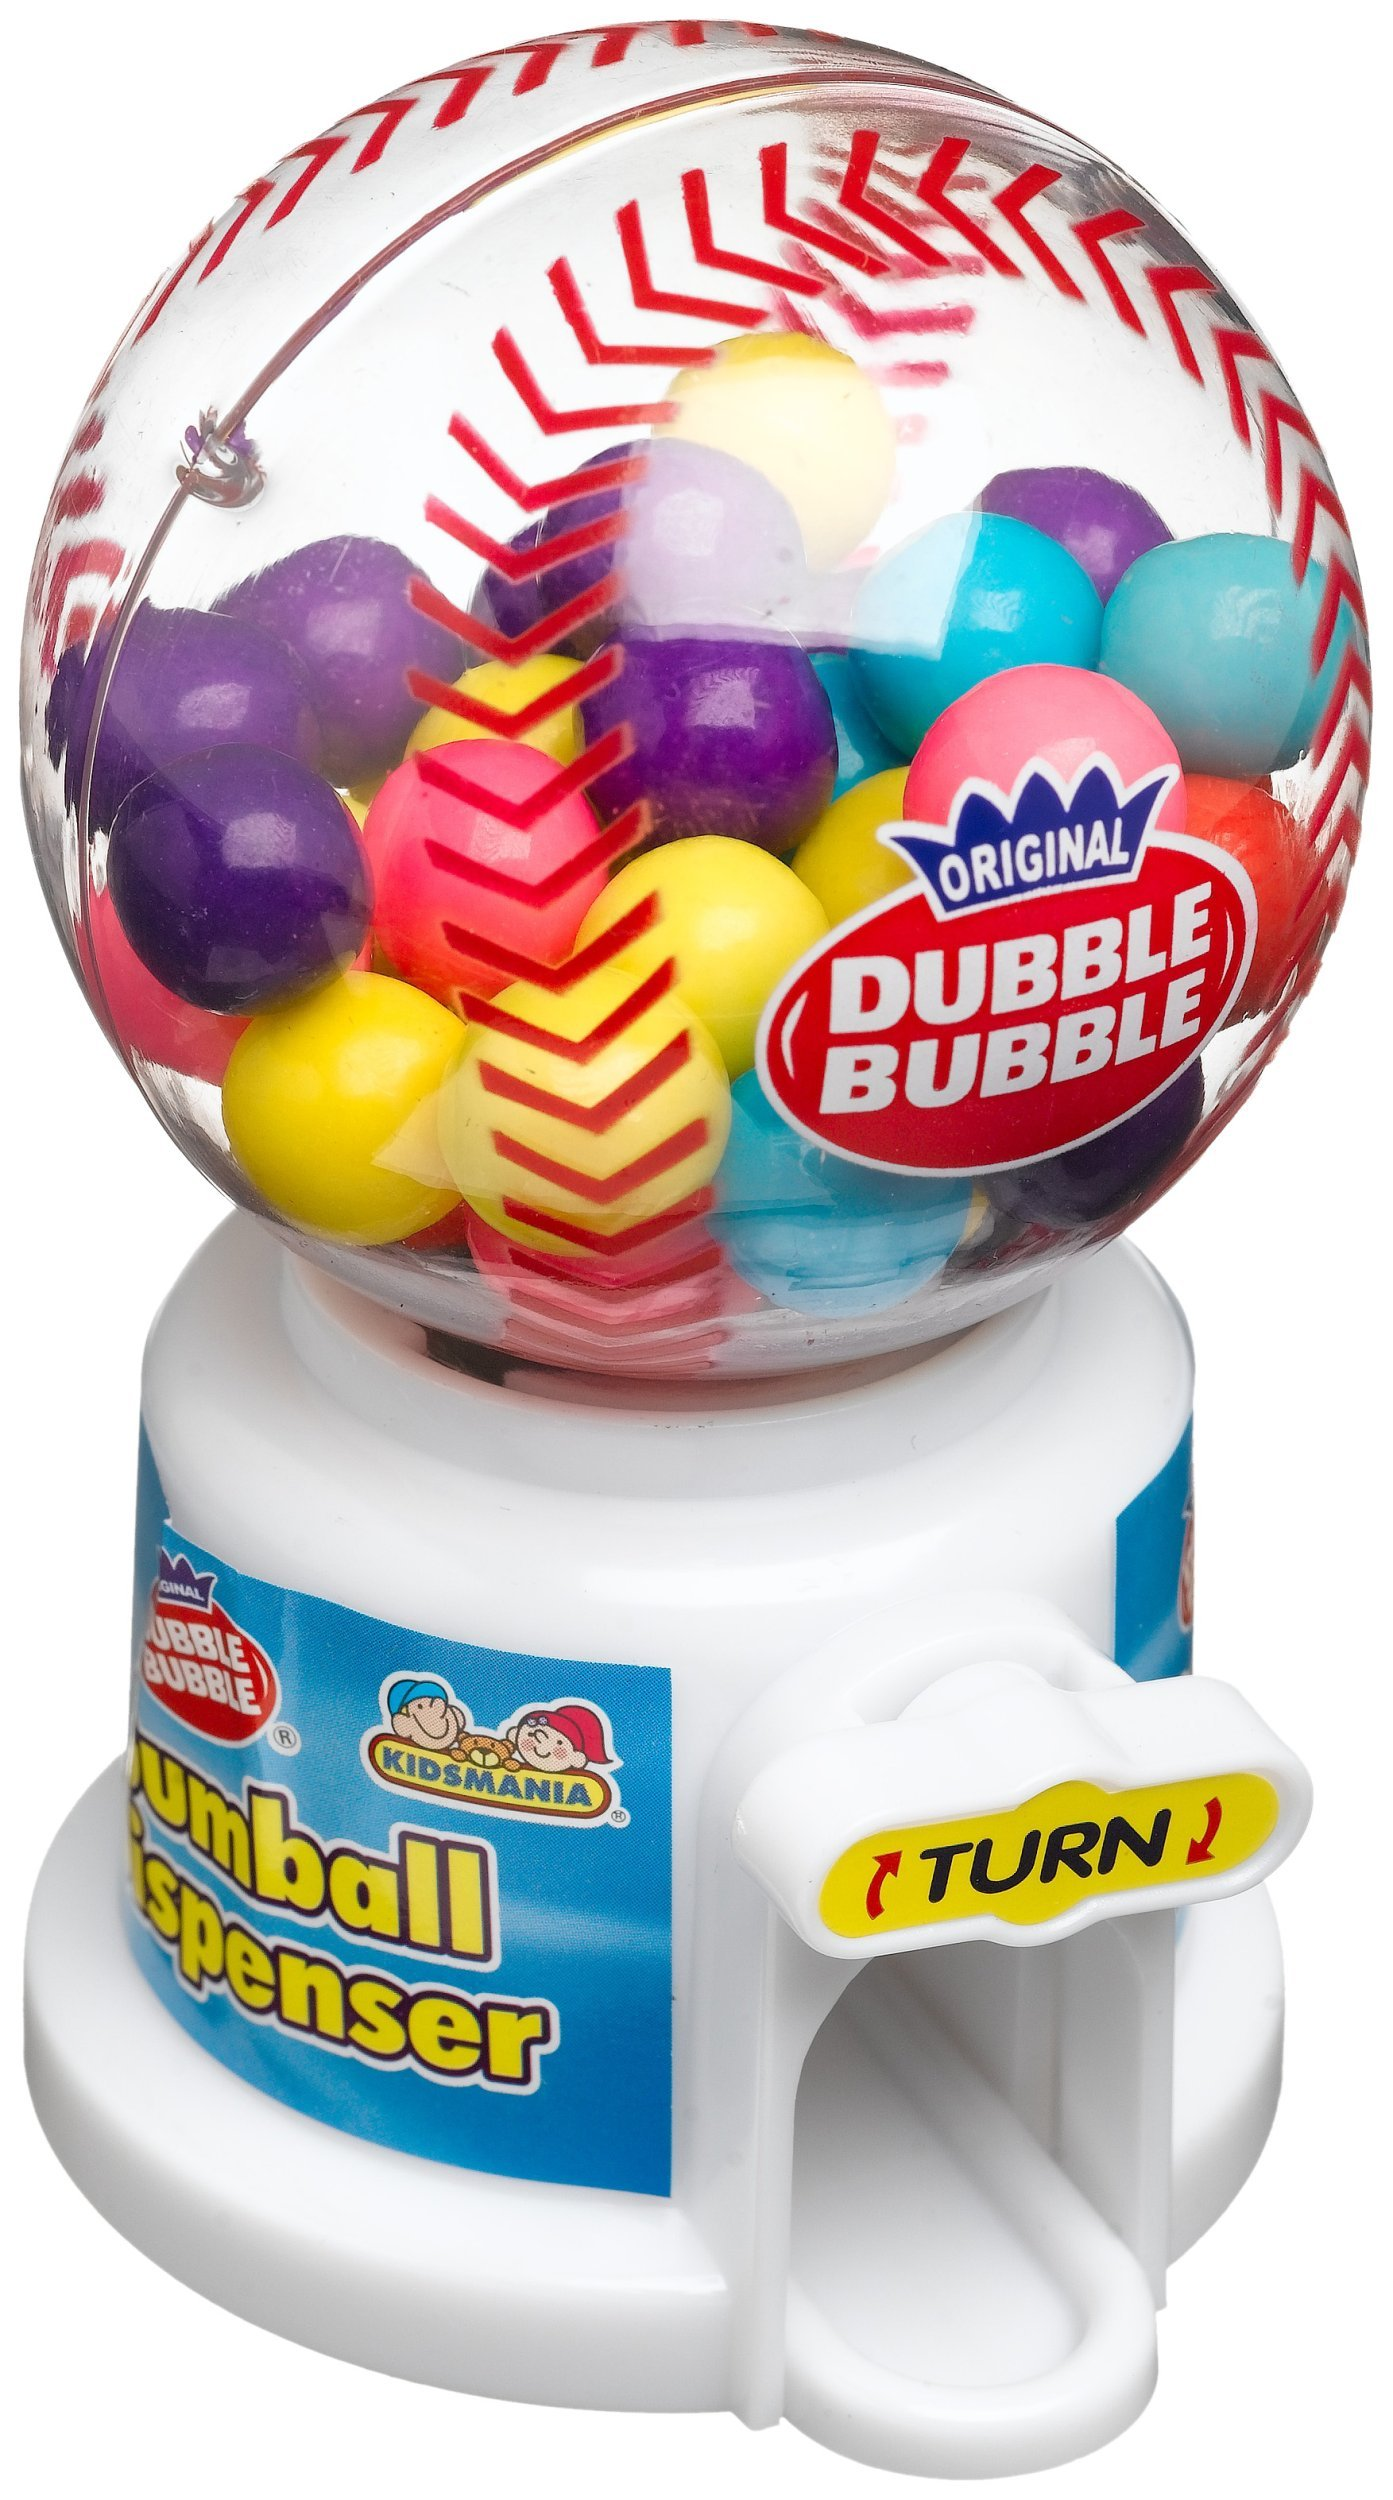 Kidsmania Dubble Bubble Assorted Hot Sports Gum Ball Dispenser, 1.4-Ounce Candy-Filled Dispensers (Pack of 12) by Kidsmania